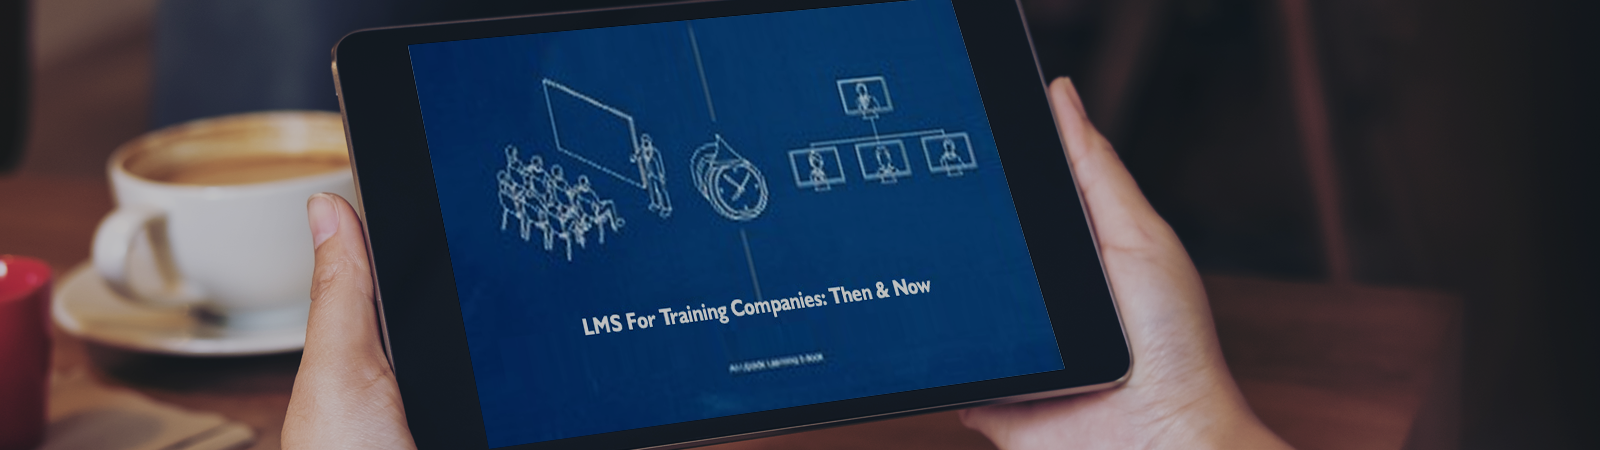 lms for training companies � then amp now get the free